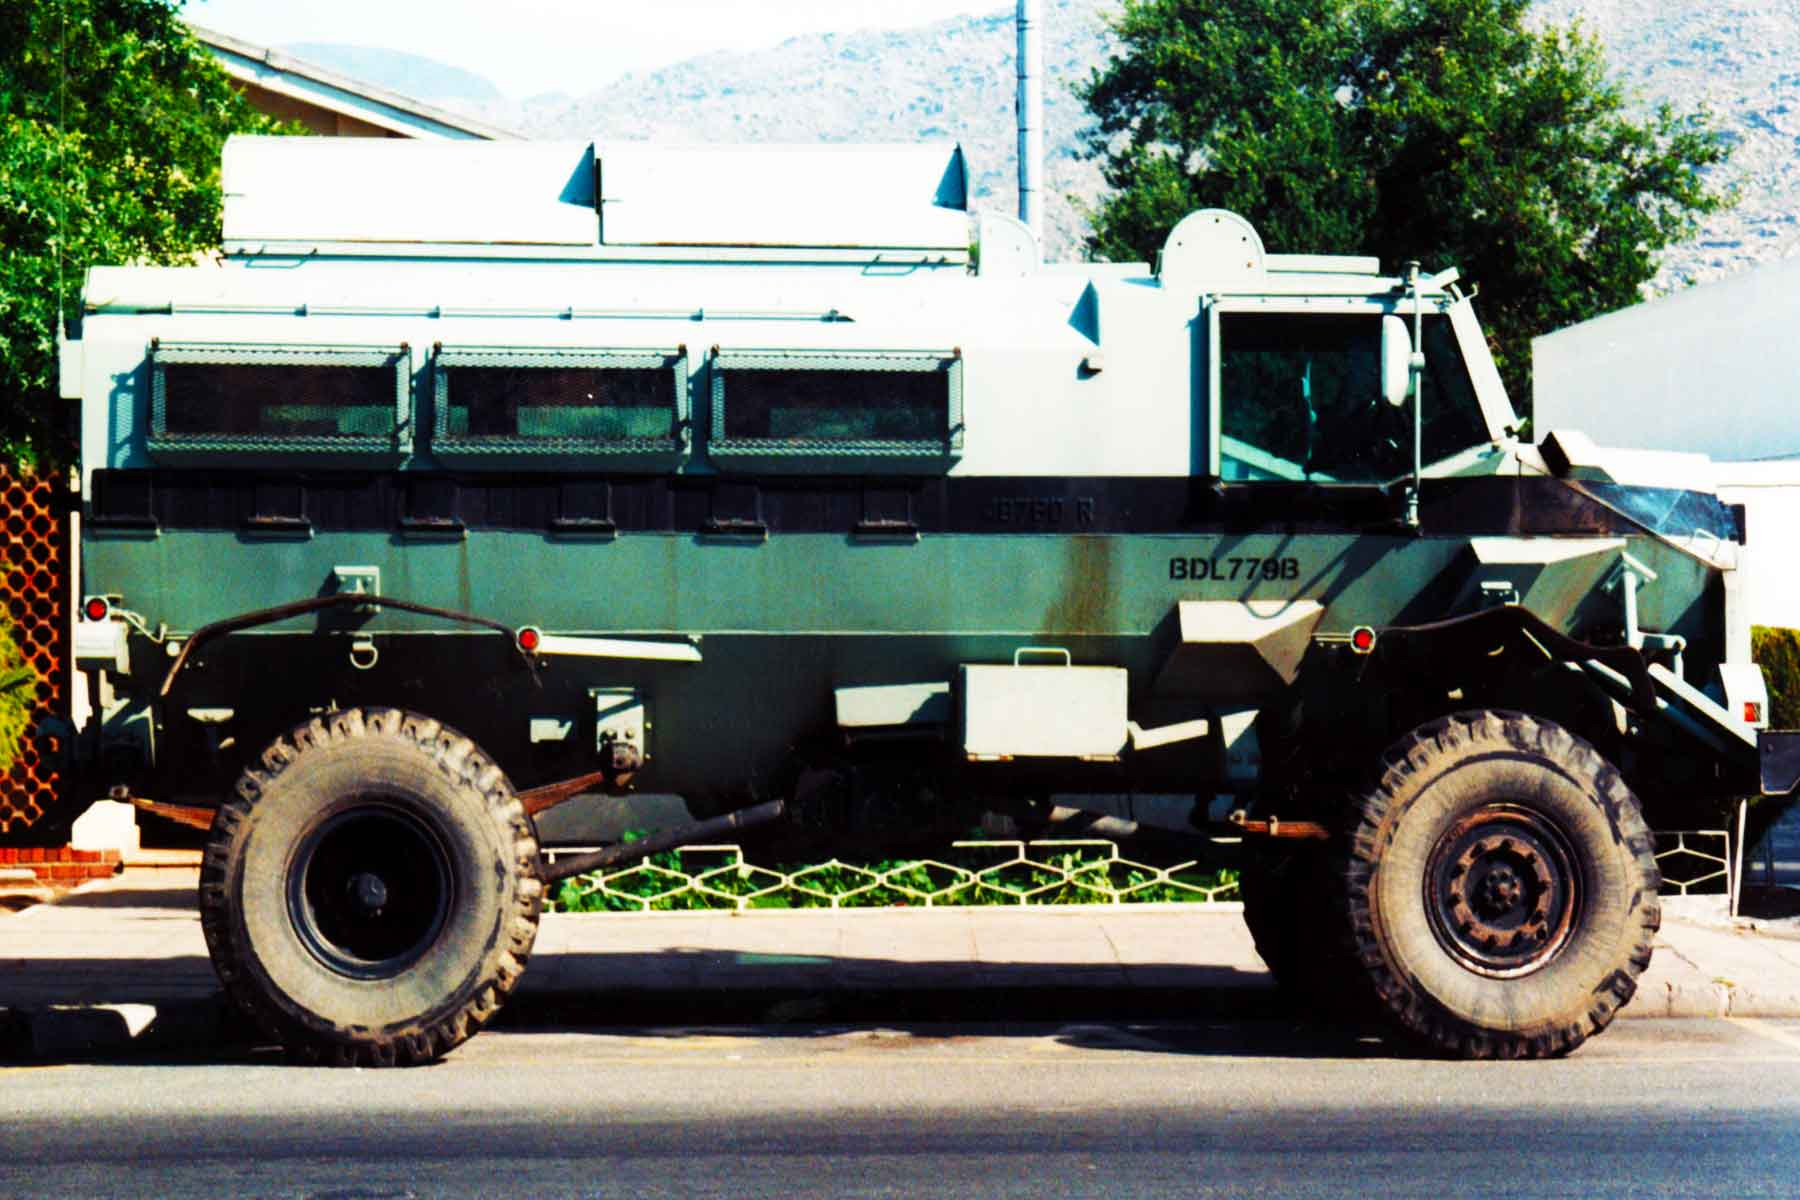 Casspir | Mine Protected Vehicle (MPV) | Soweto, South Africa | Steven Andrew Martin | Photo Journal